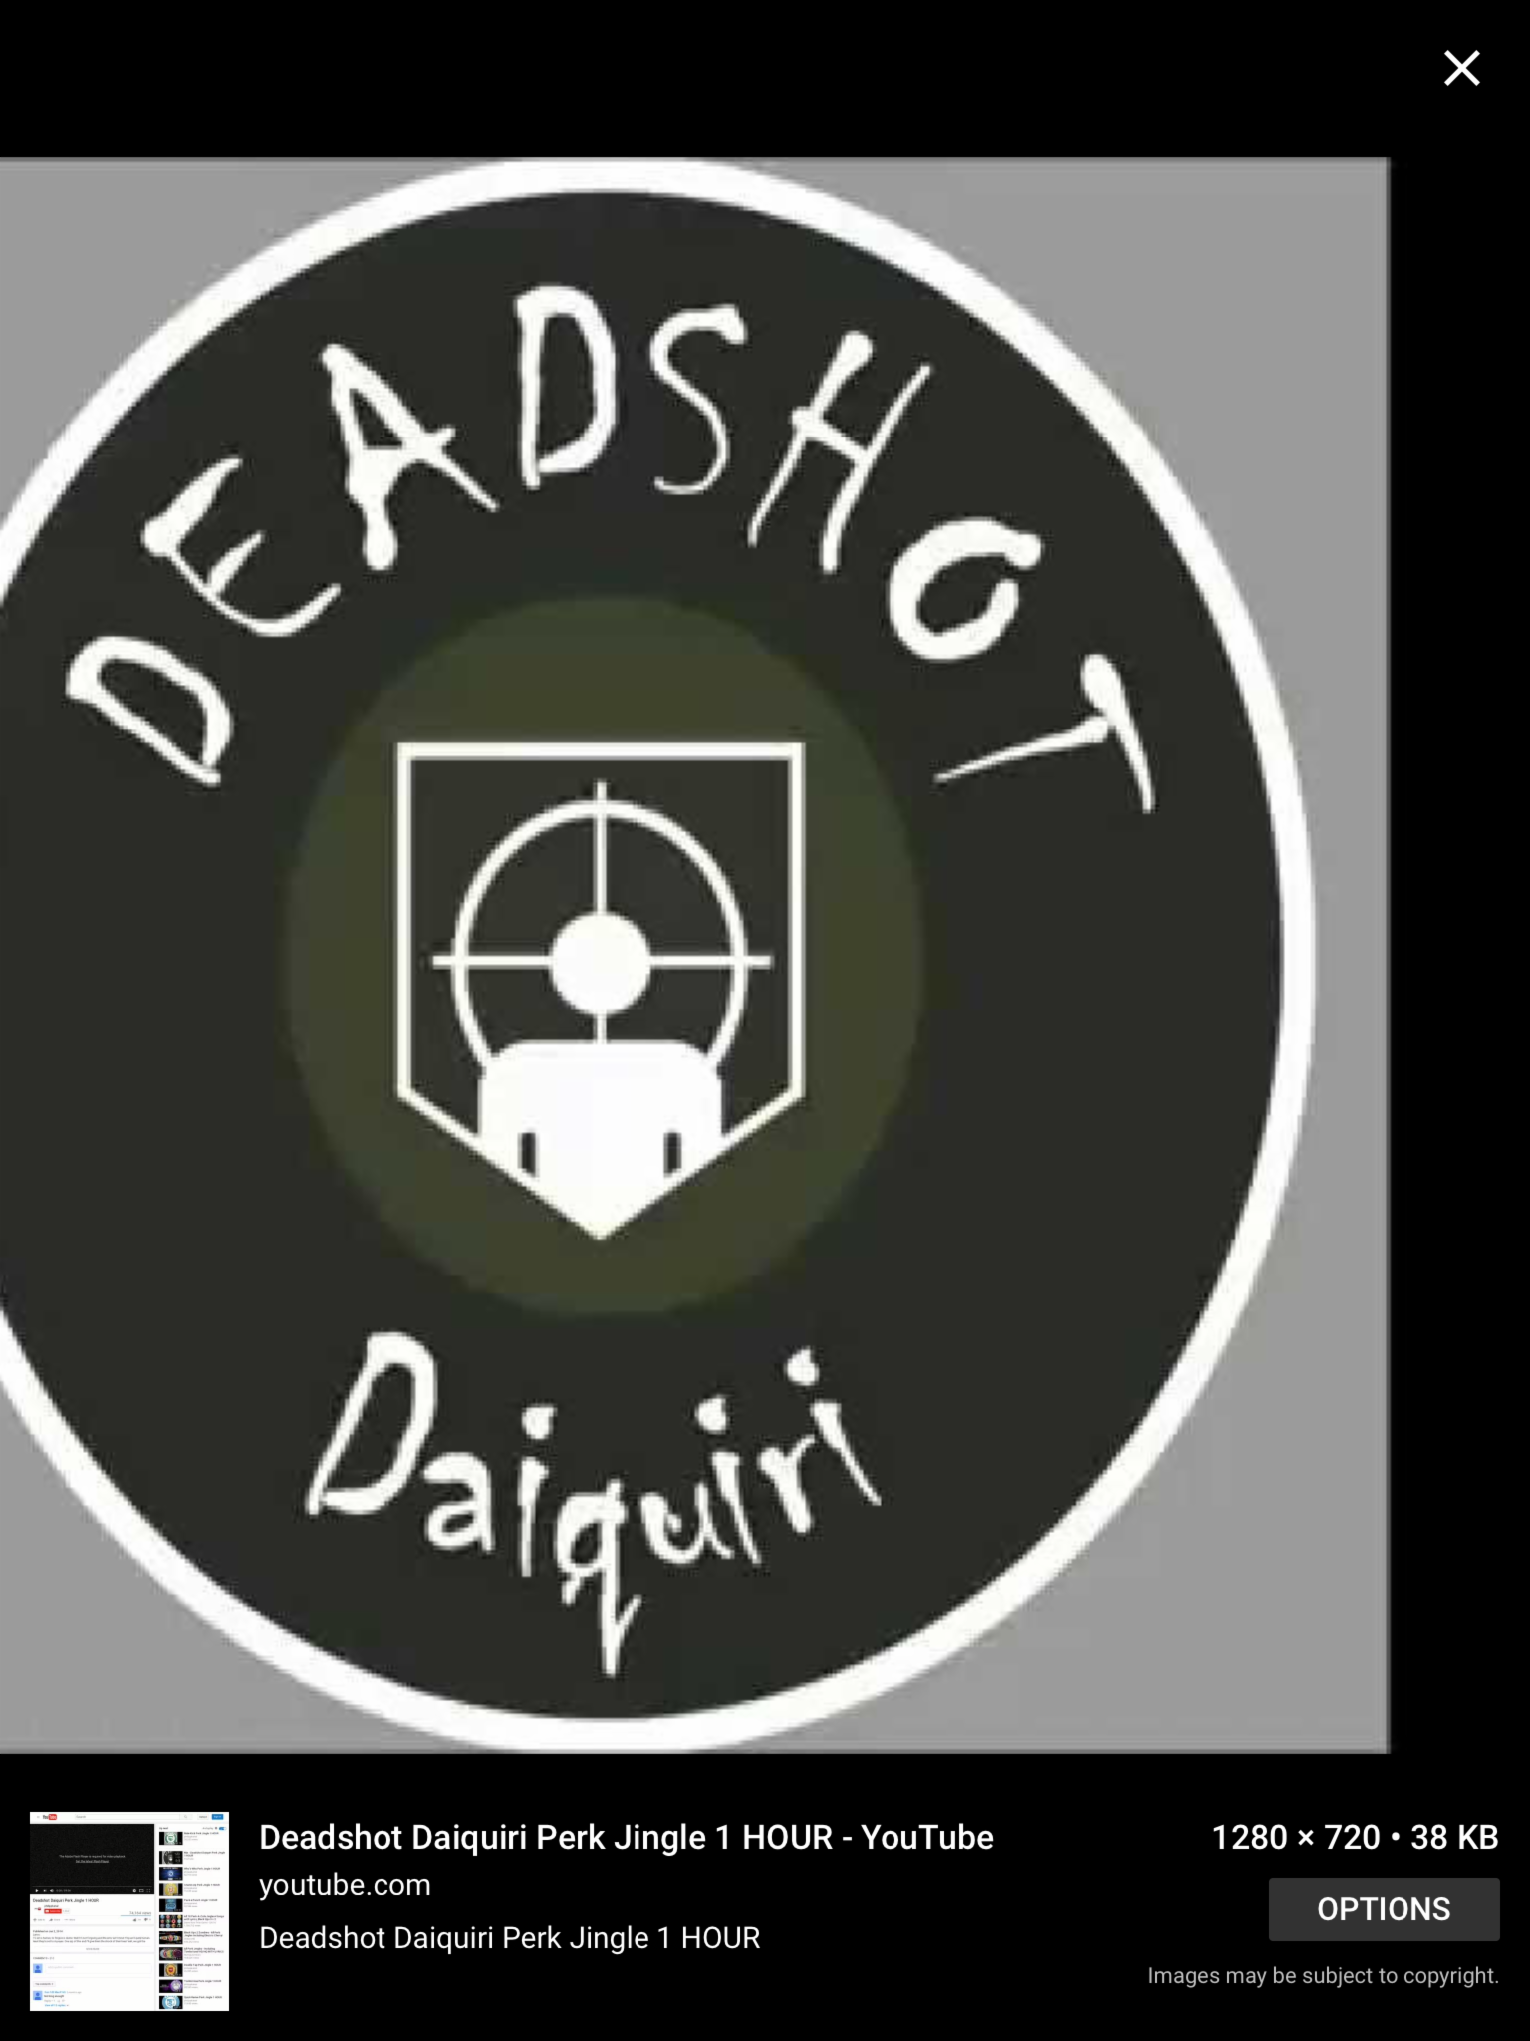 How does deadshot work ?